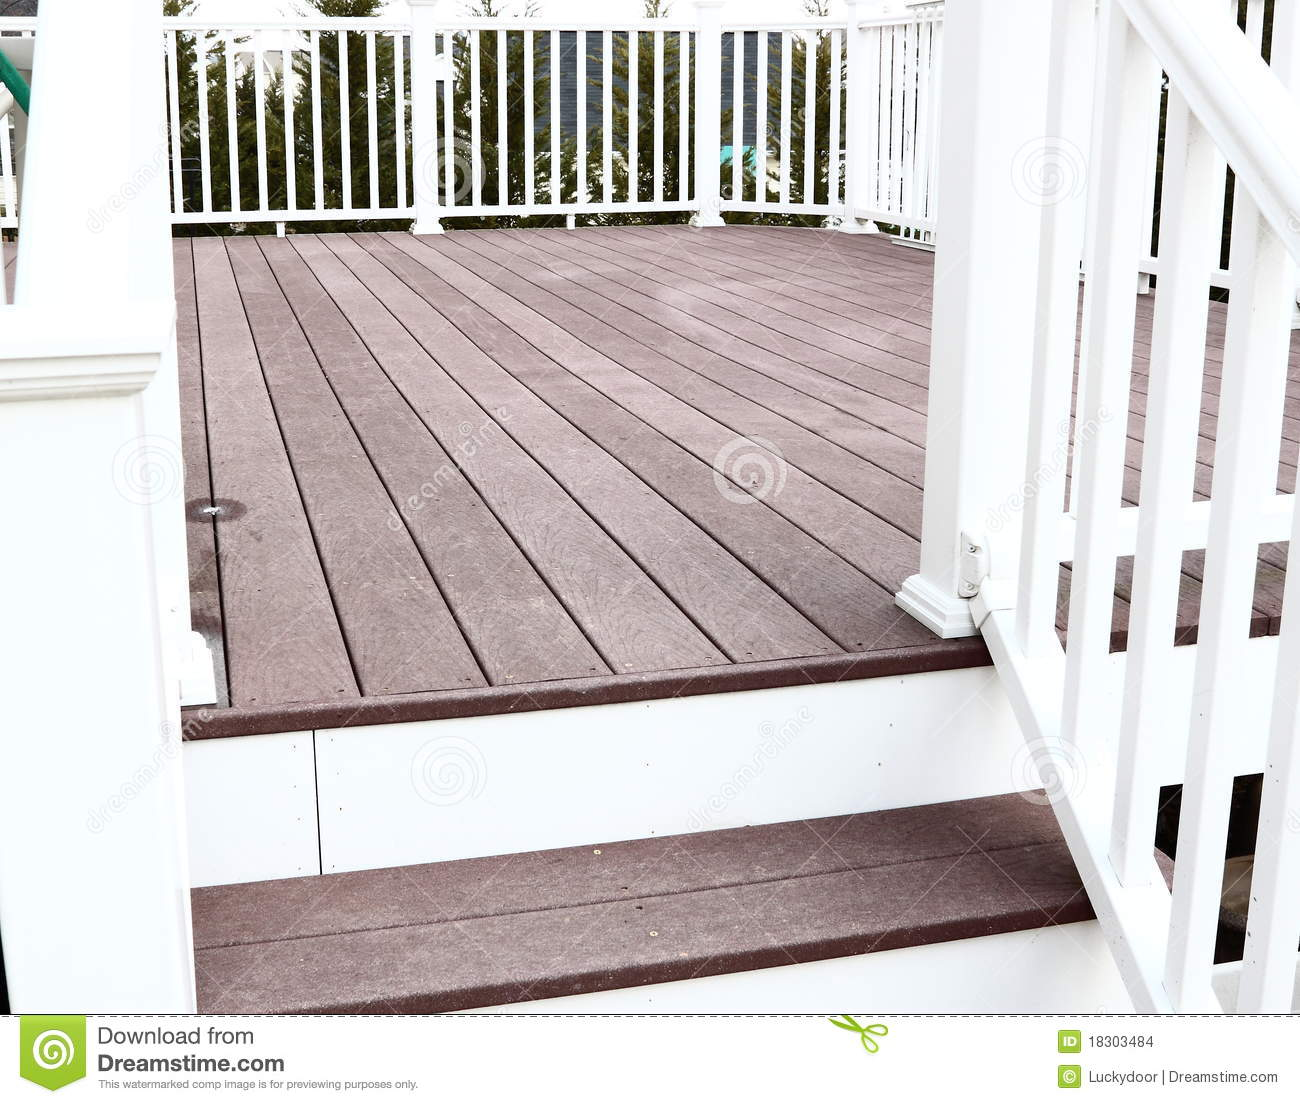 Trex Deck Floor With Steps Stock Images - Image: 18303484